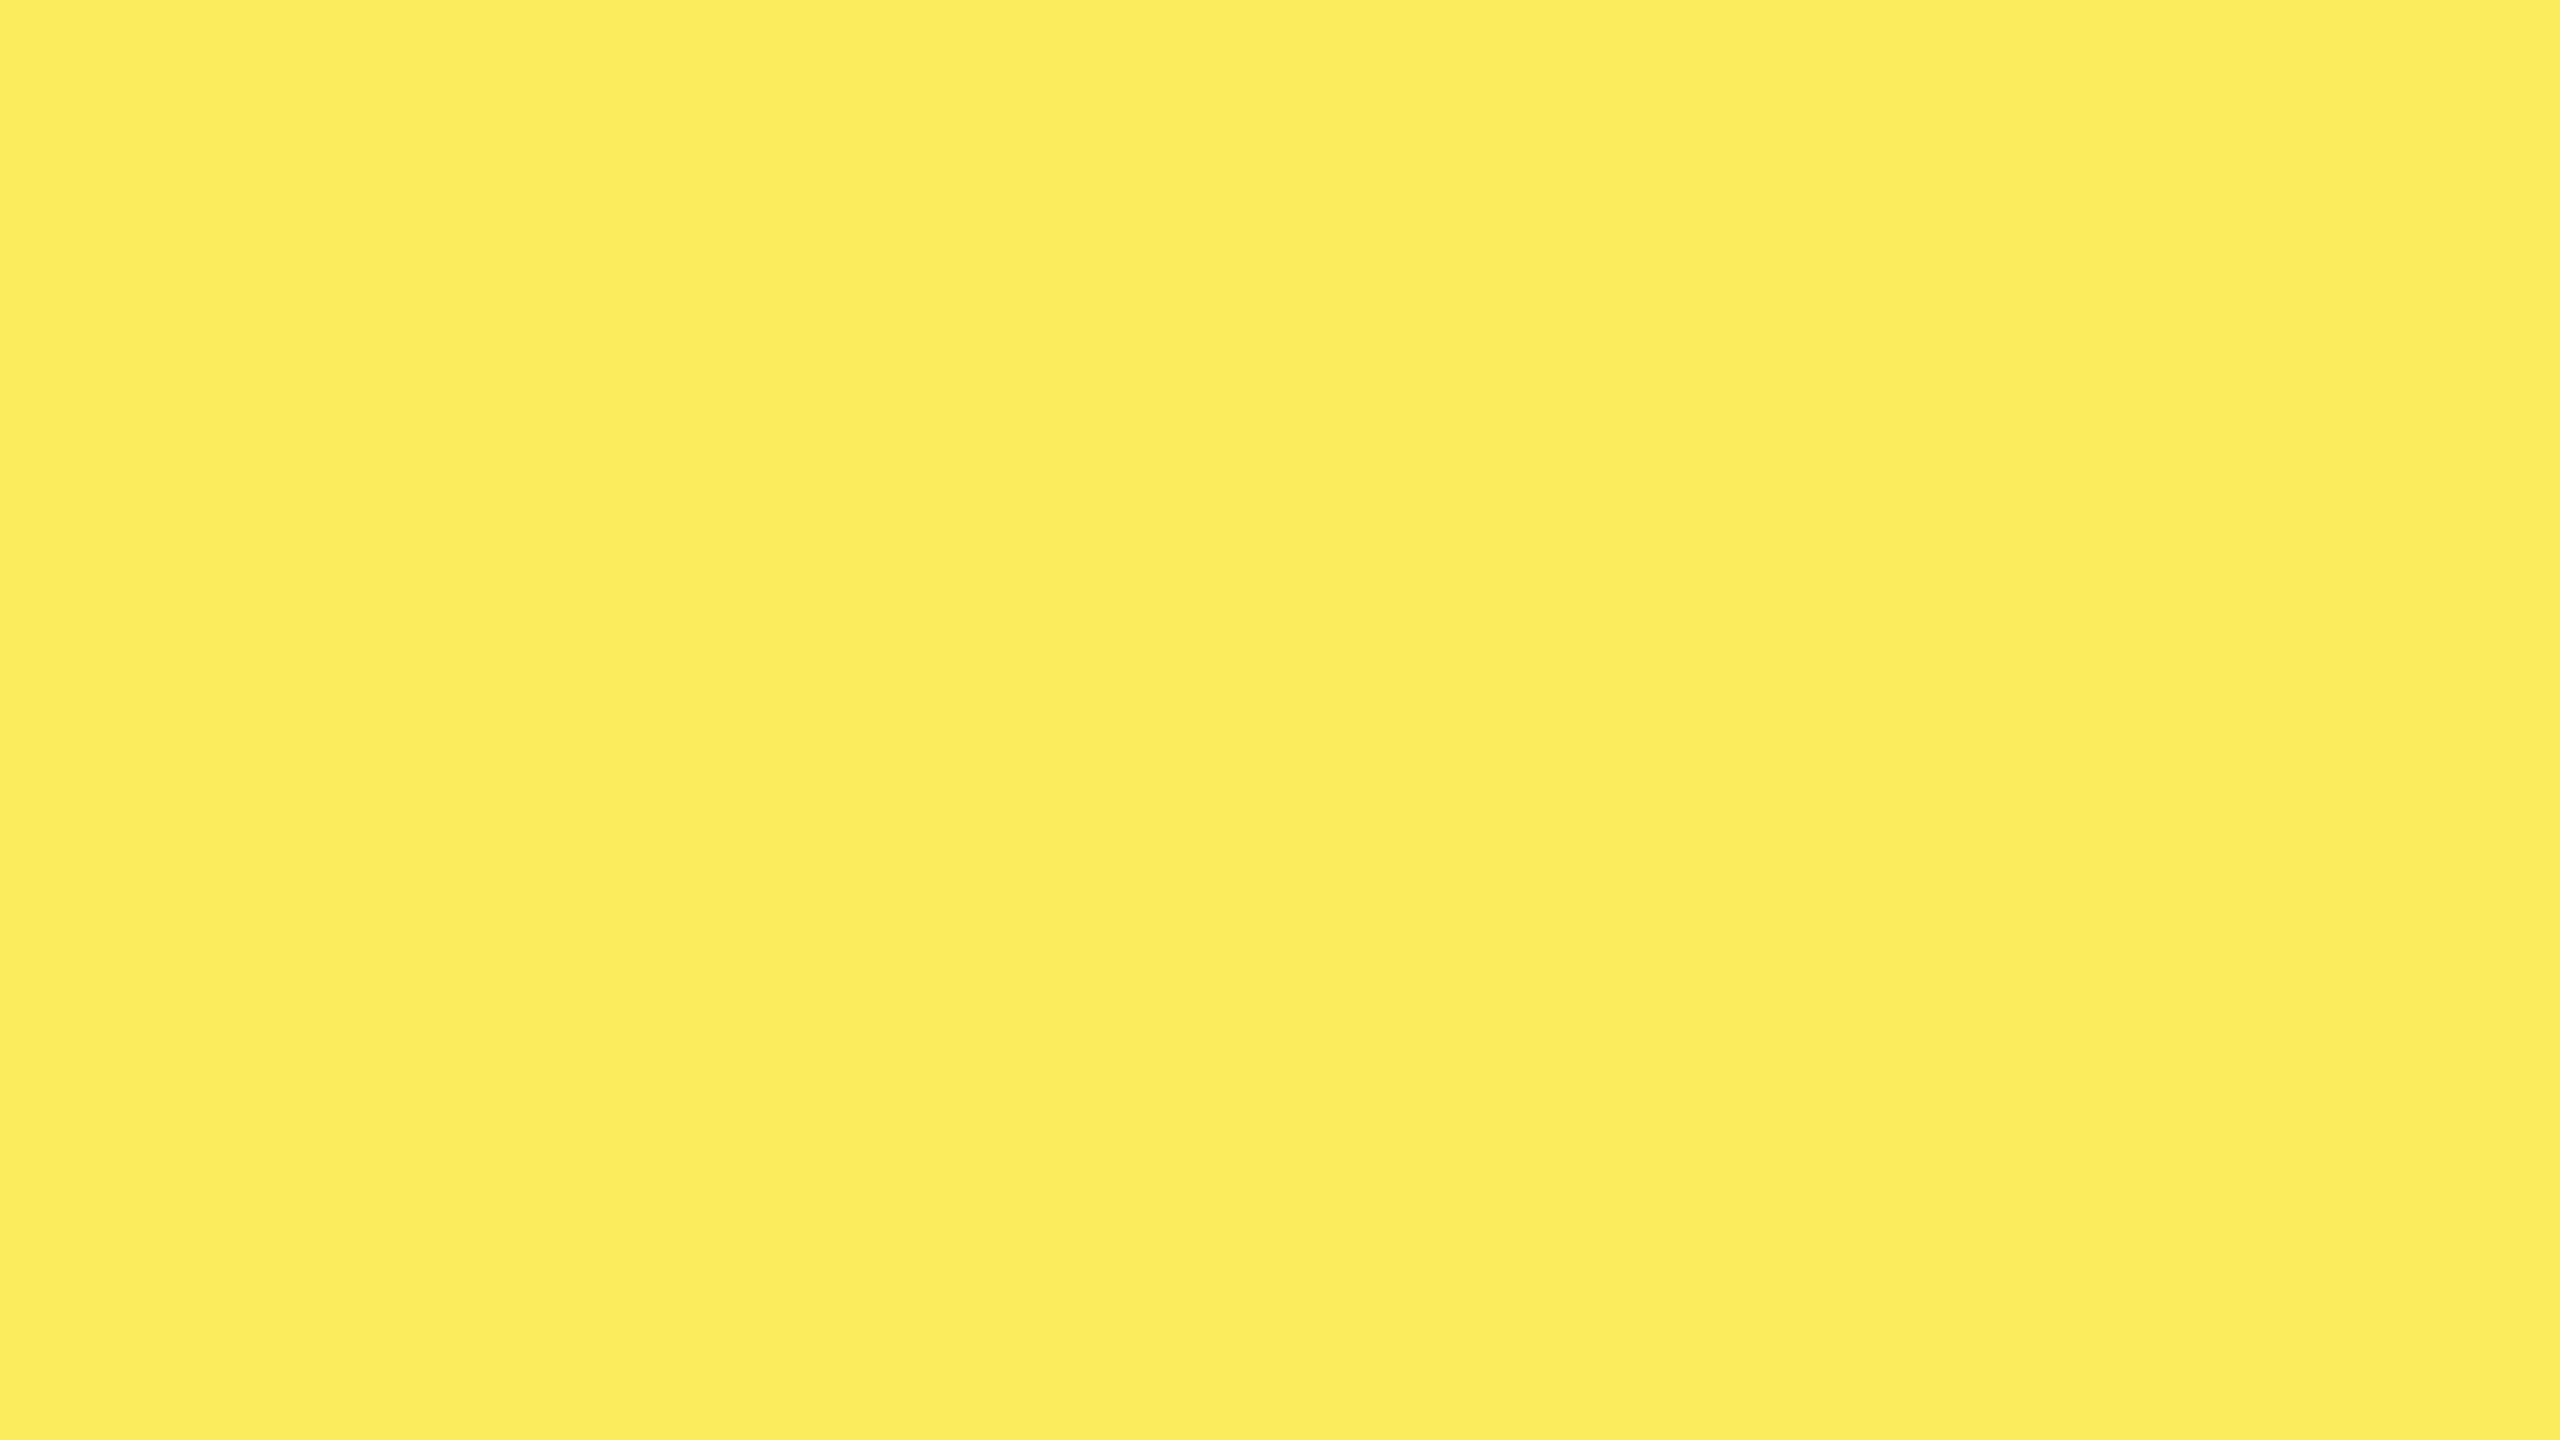 2560x1440 Corn Solid Color Background